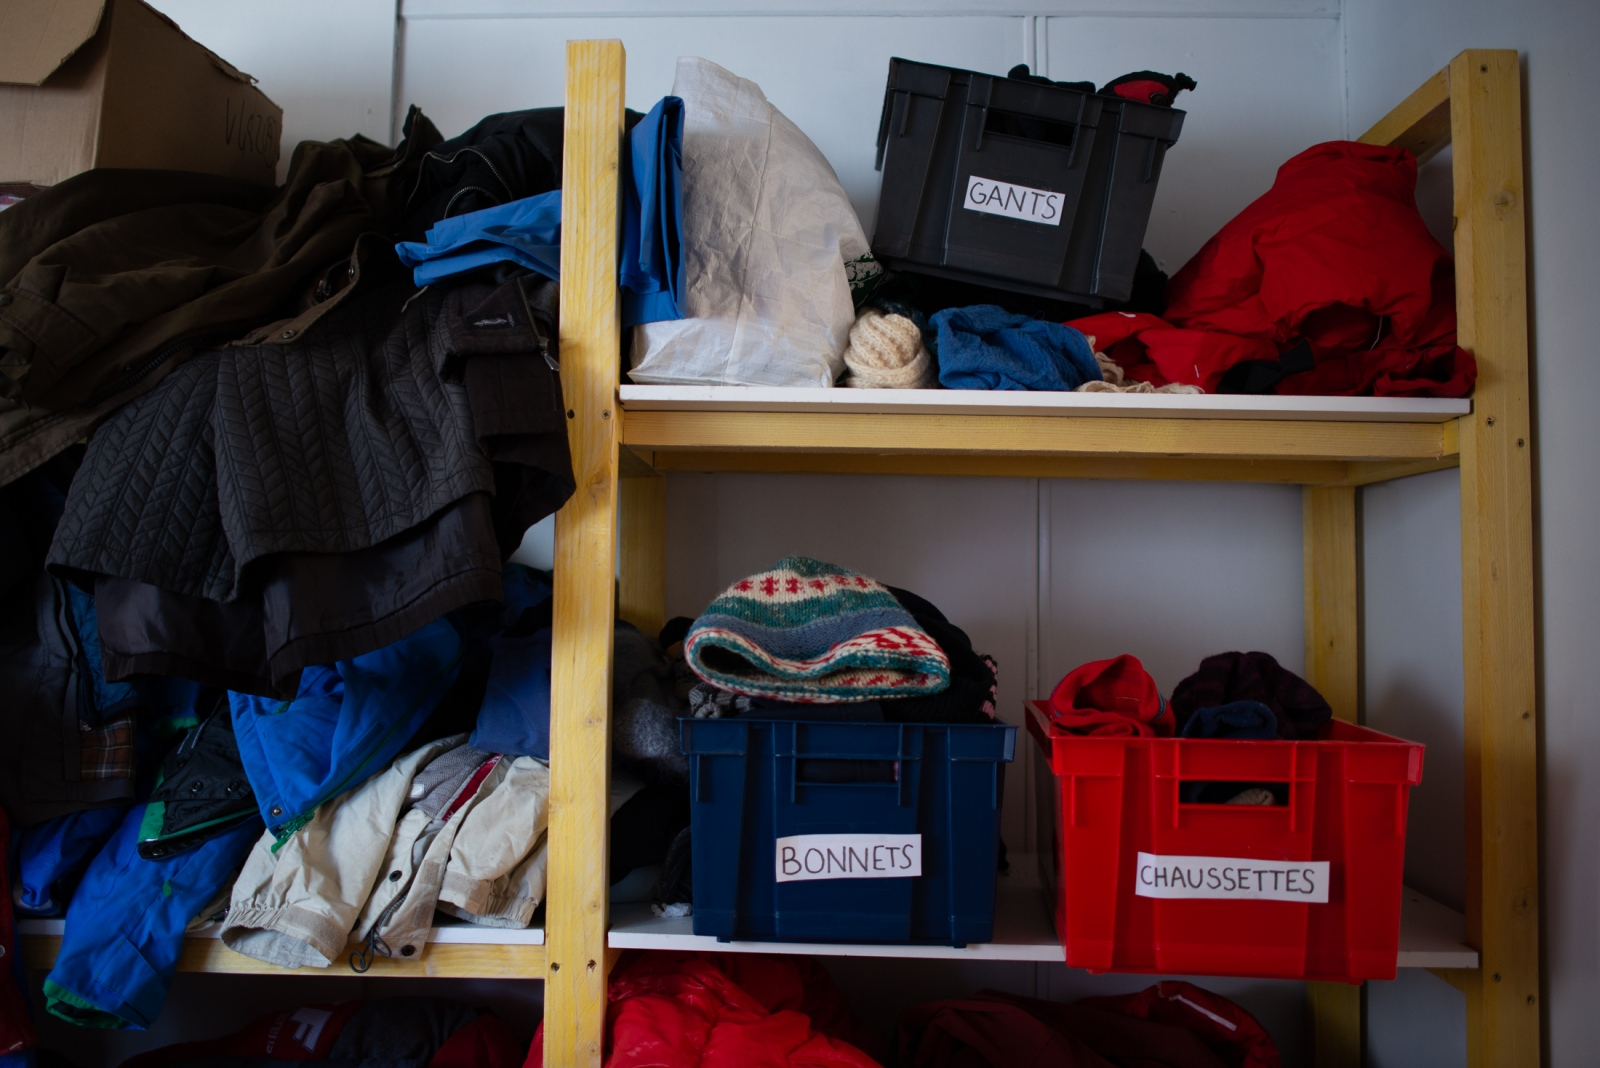 Donated winter gear is stocked in the patrolling team's office.  Volunteers carry extra winter, as many rescued migrants do not have the appropriate clothes for freezing temperatures.  Briançon, France - January 2019.